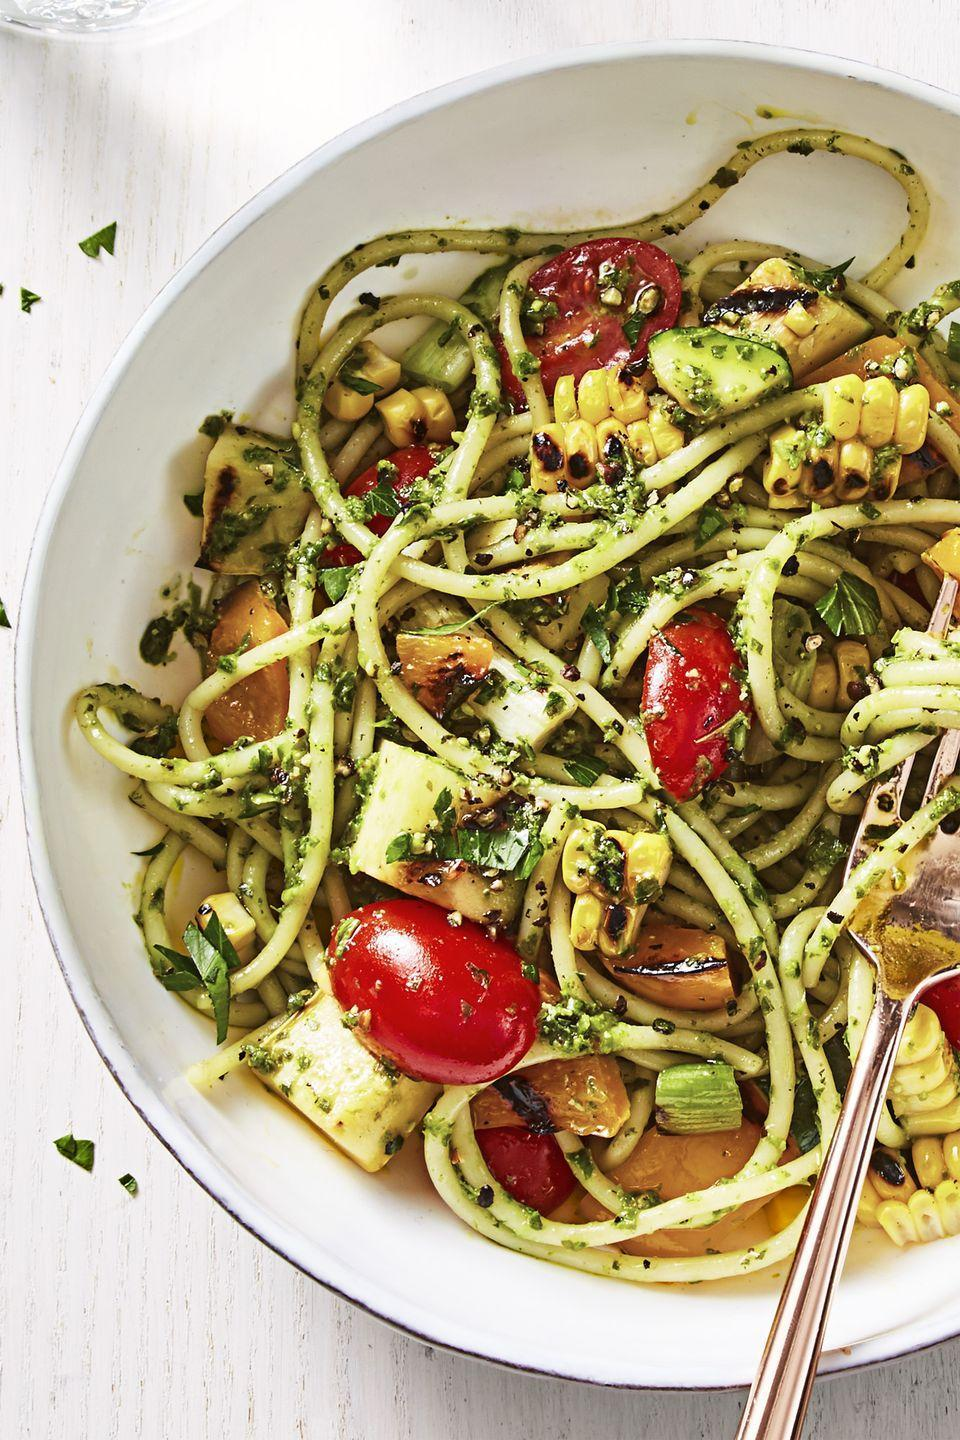 """<p>Bring this to a friend's barbecue bash, so you know for sure that there will be something for you to eat. Note: Be sure to buy vegan pesto (but, you knew that already!). </p><p><em><a href=""""https://www.goodhousekeeping.com/food-recipes/a44097/summer-pesto-pasta-recipe/"""" rel=""""nofollow noopener"""" target=""""_blank"""" data-ylk=""""slk:Get the recipe for Summer Pesto Pasta »"""" class=""""link rapid-noclick-resp"""">Get the recipe for Summer Pesto Pasta »</a></em></p>"""